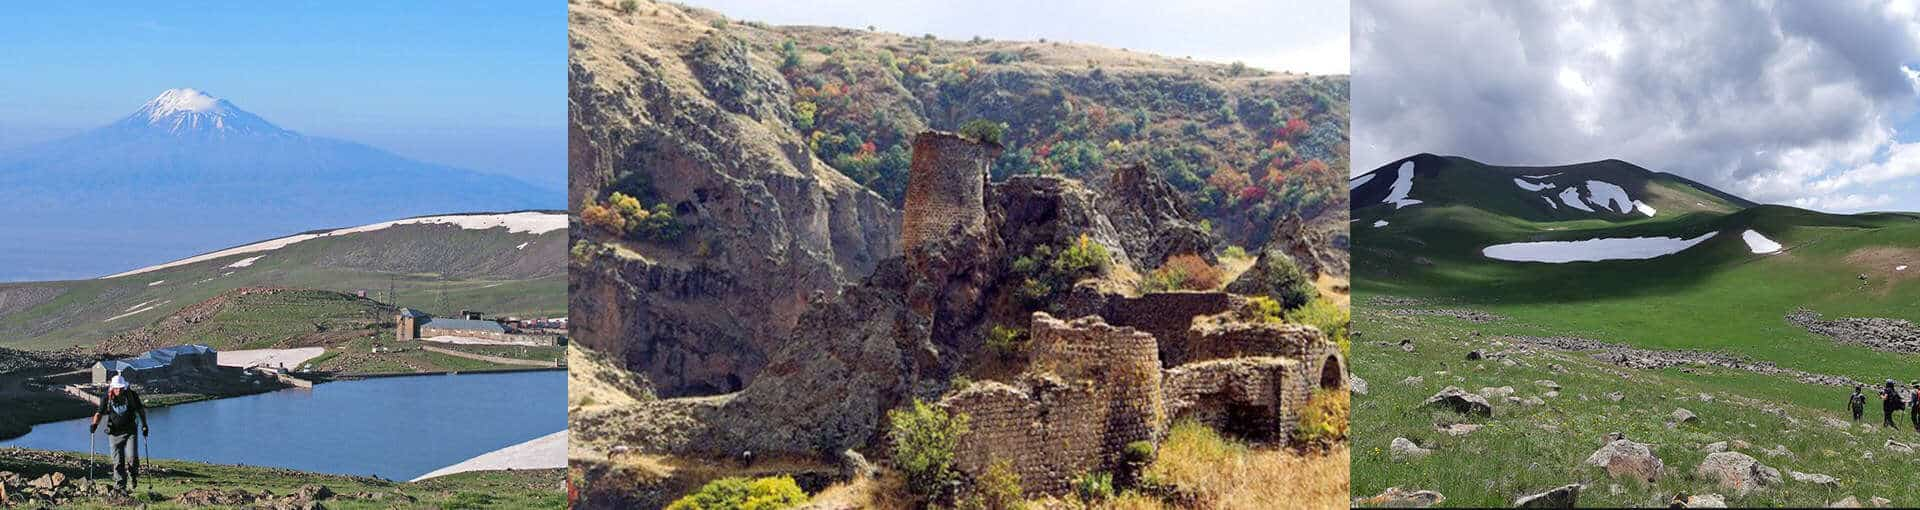 Hidden Destinations in Armenia